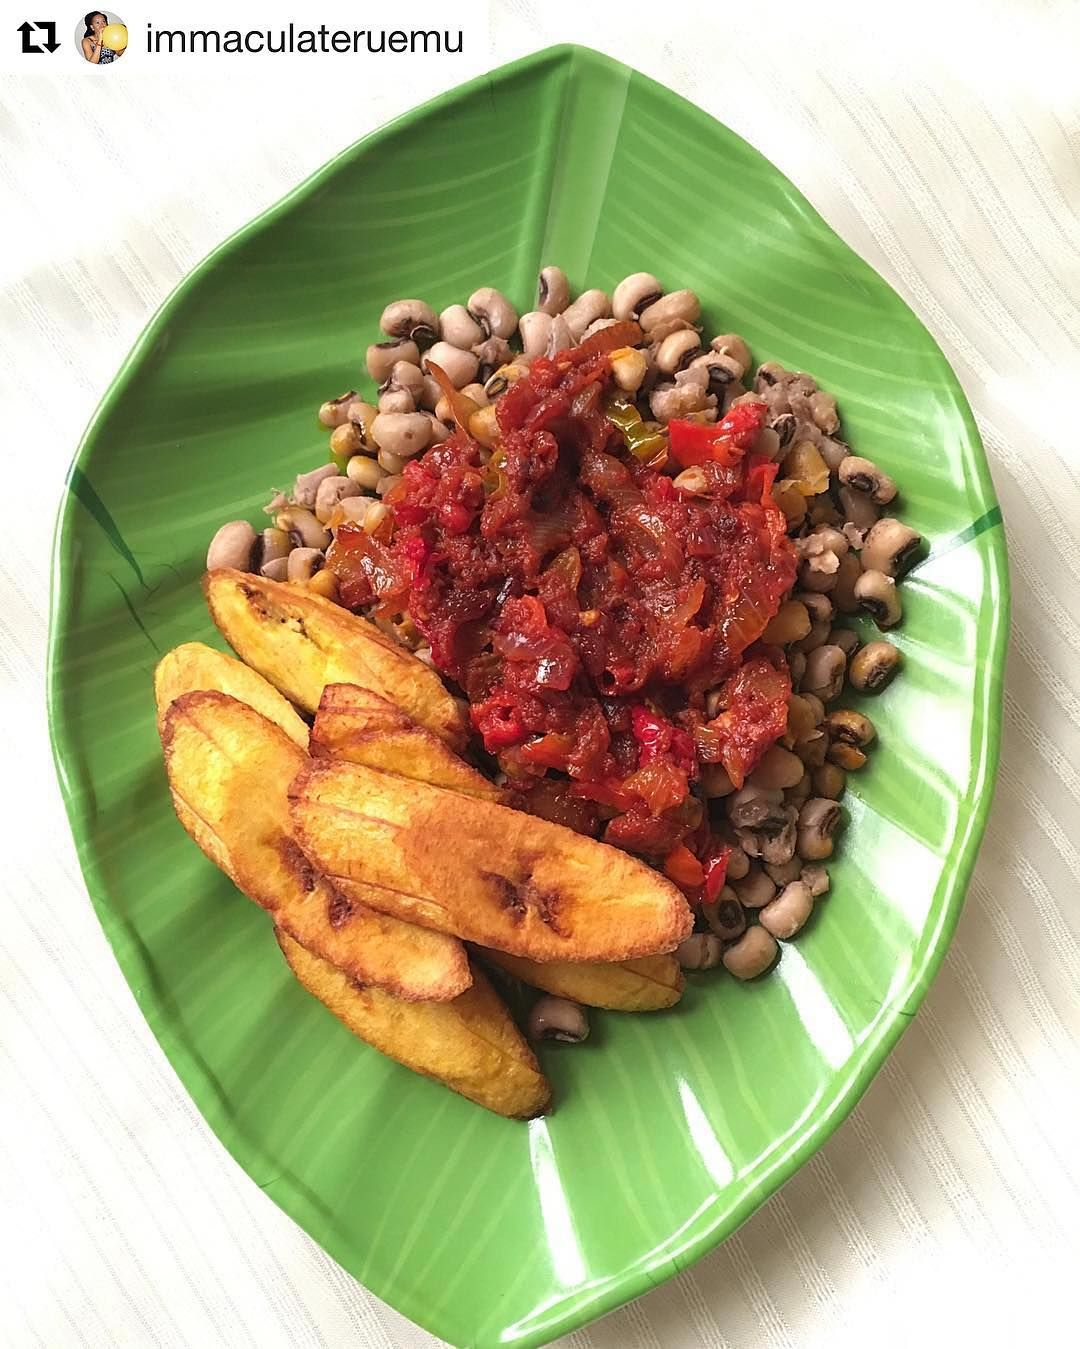 Cuisiner Le Plantain I N S P I R A T I O N Beans Stew And Plantain This Trio